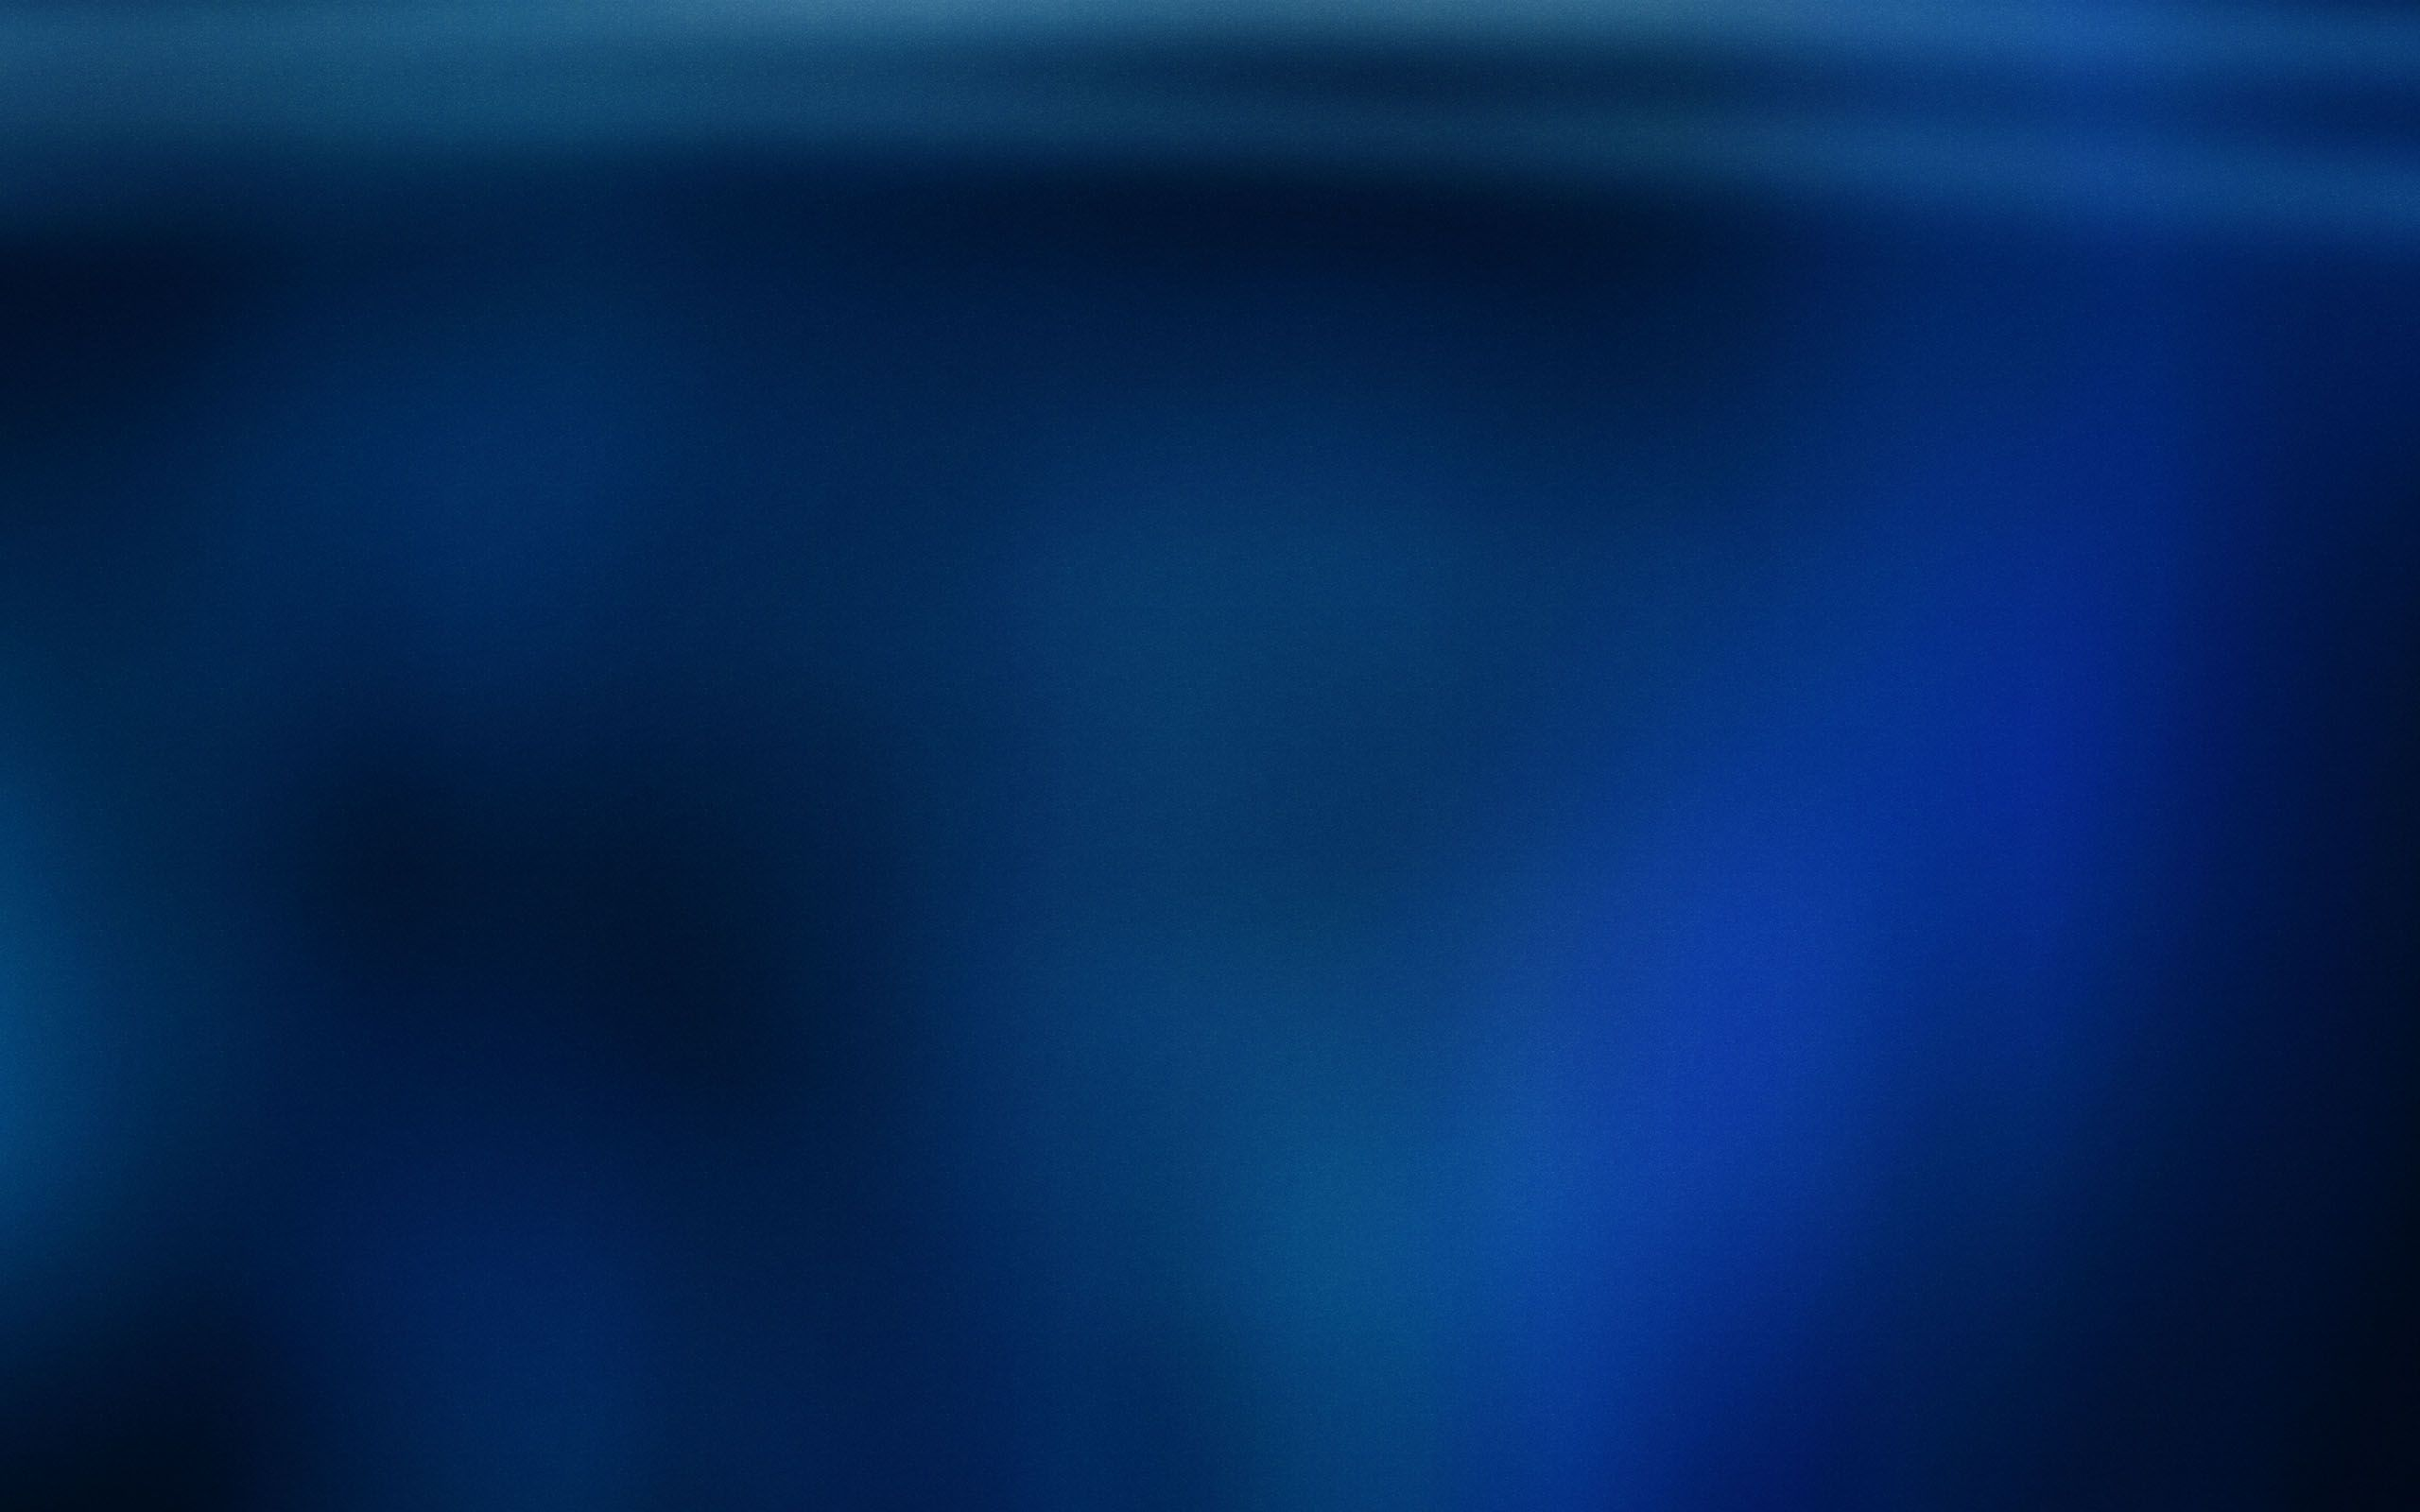 Plain Blue Backgrounds Wallpapers Wallpaper